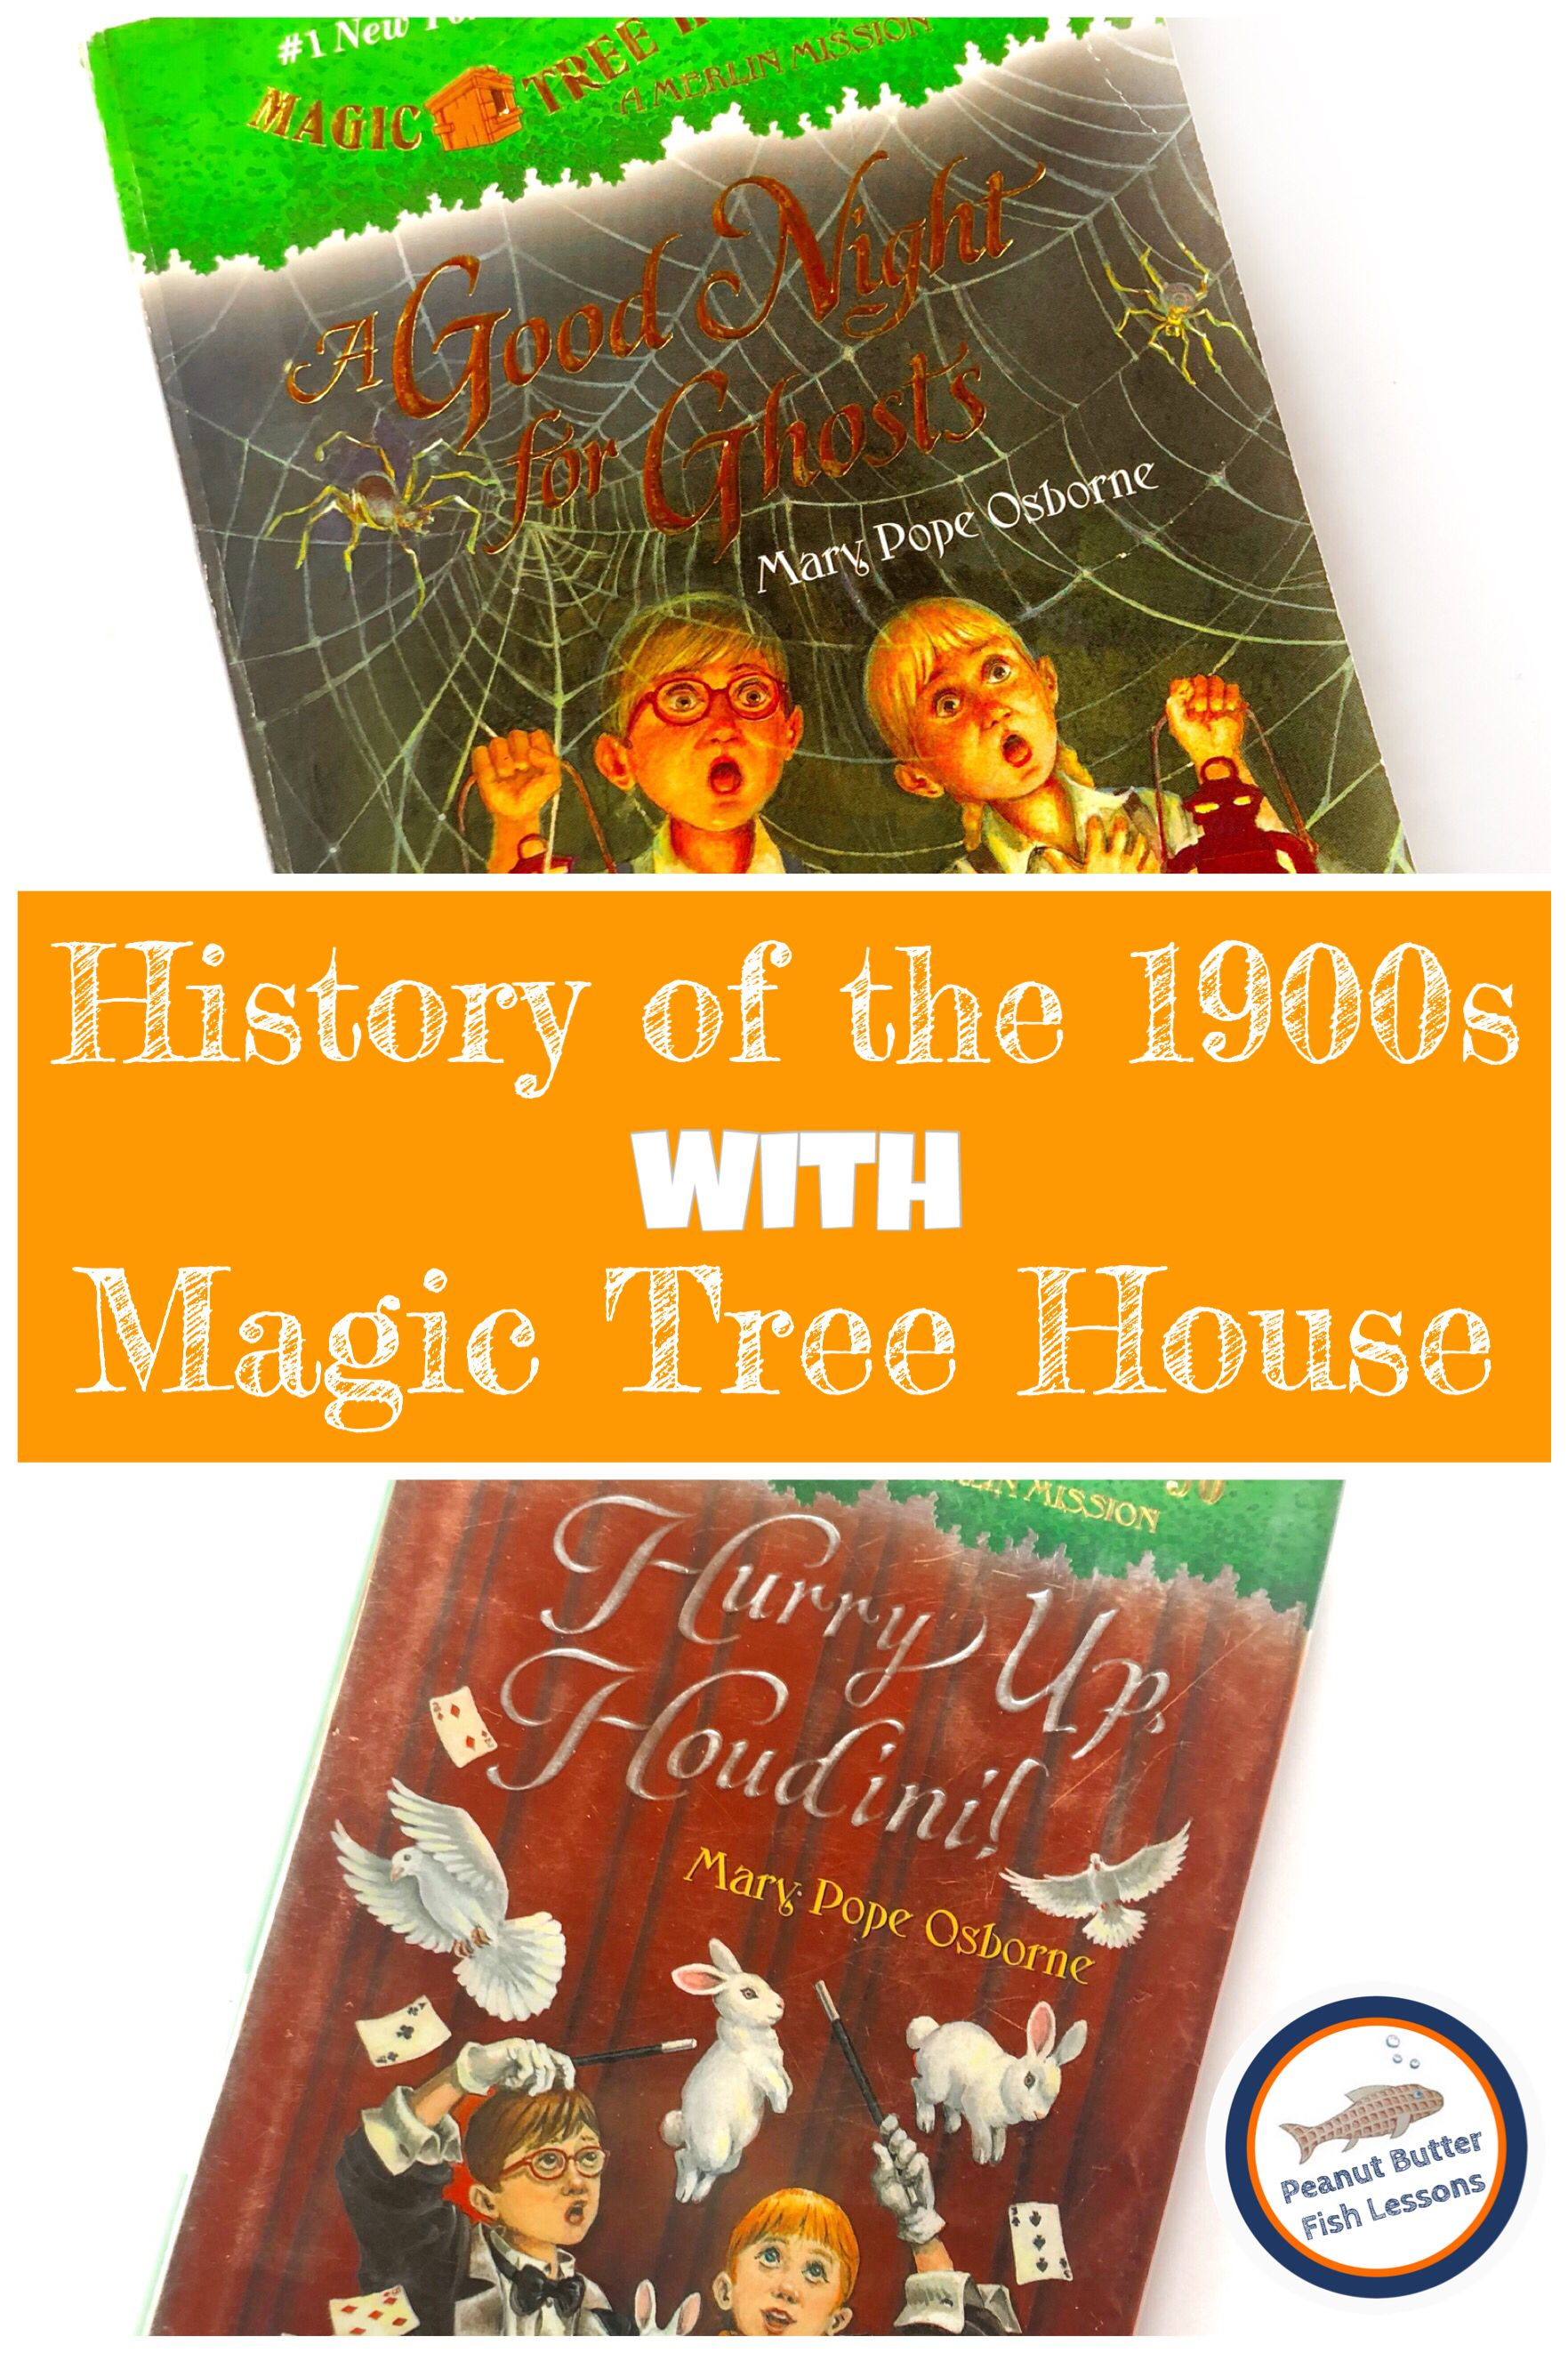 Check out this list of 9 magic tree house books set in the